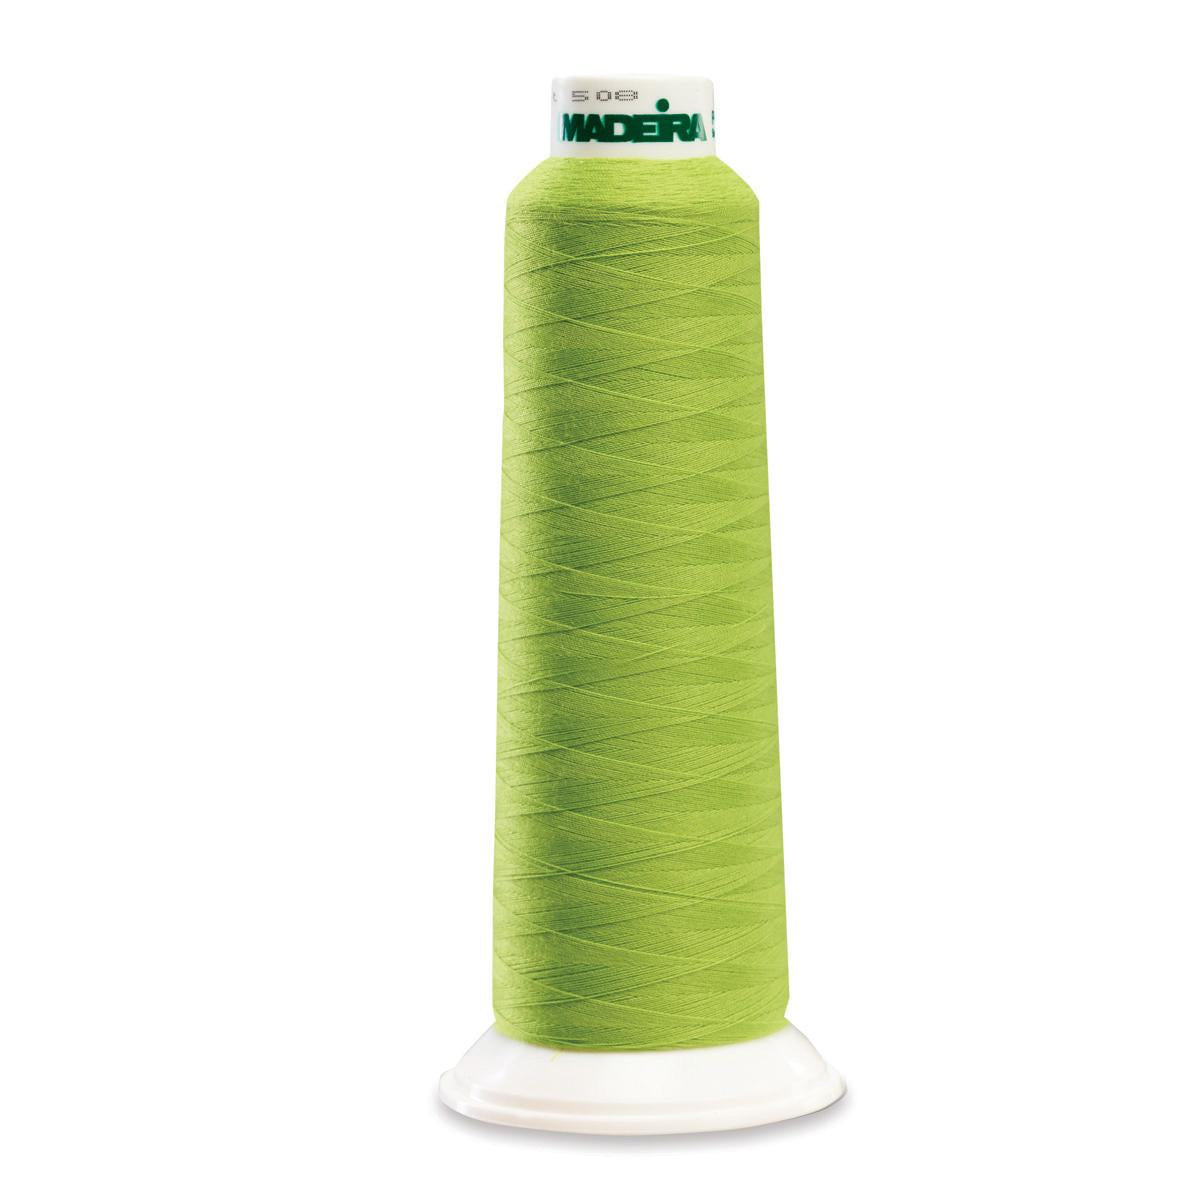 Madeira Serger Thread - Sour Apple